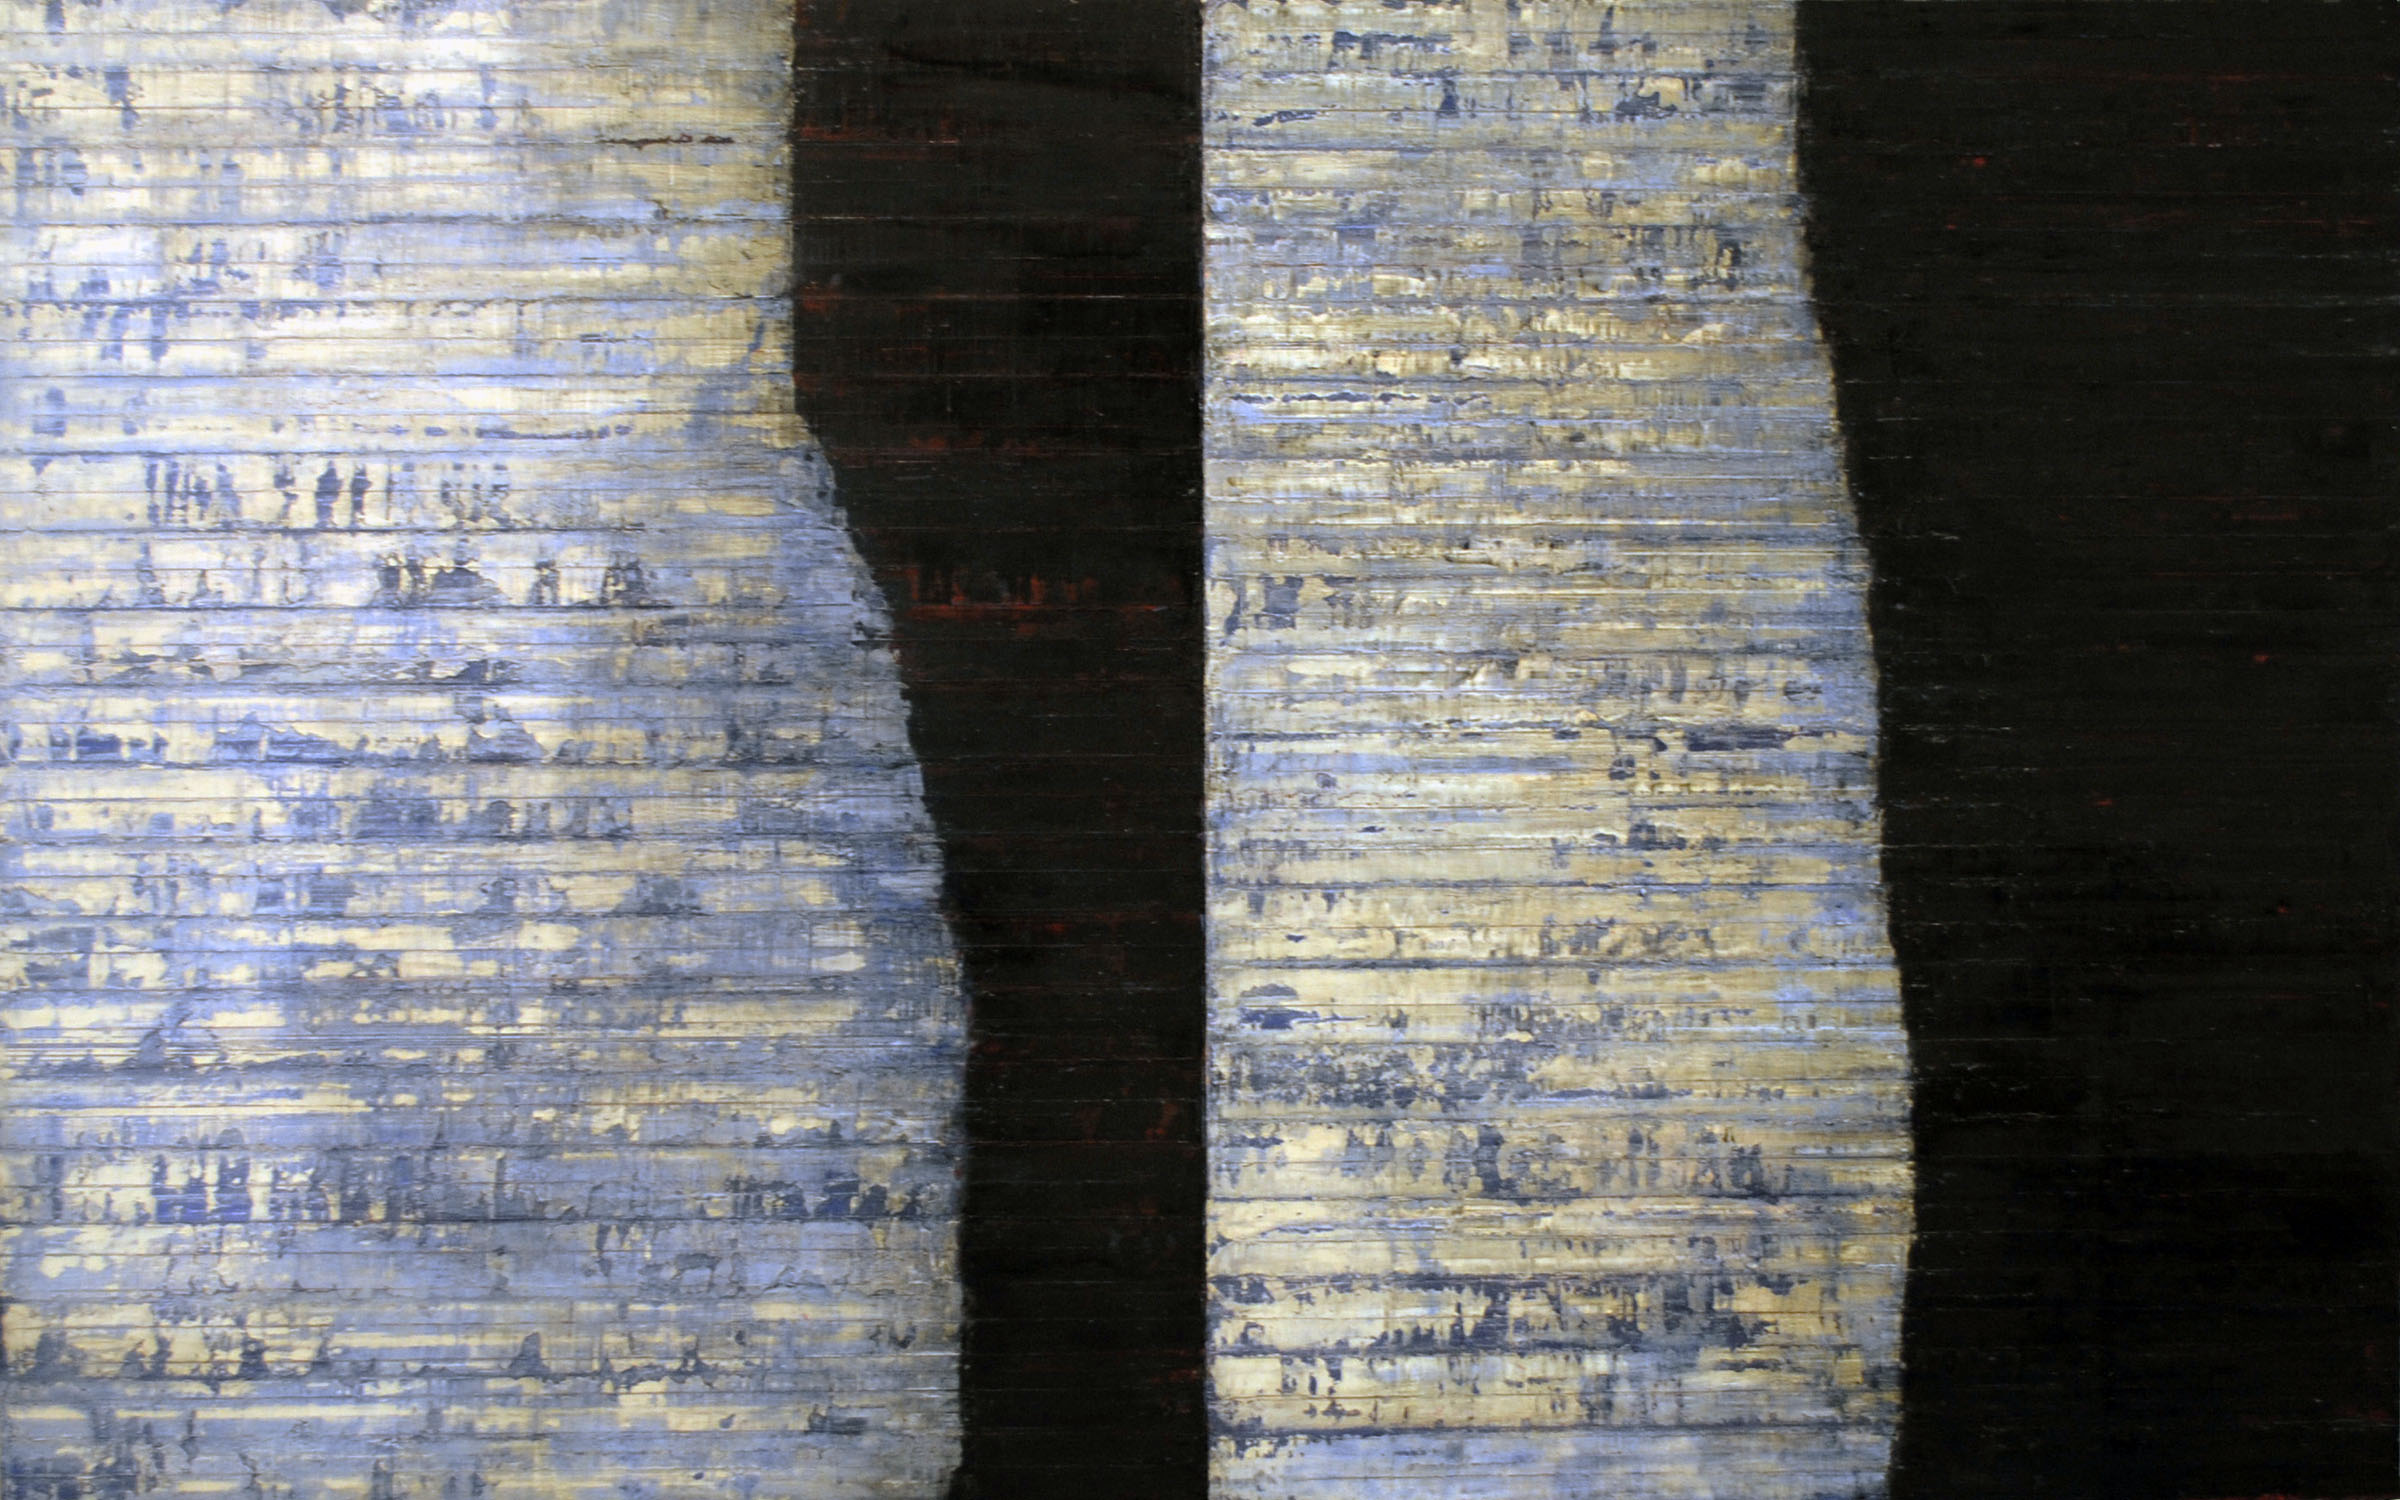 Linea Terminale: 12.09, 2009, Oil on linen over panels, 20 x 36 inches.